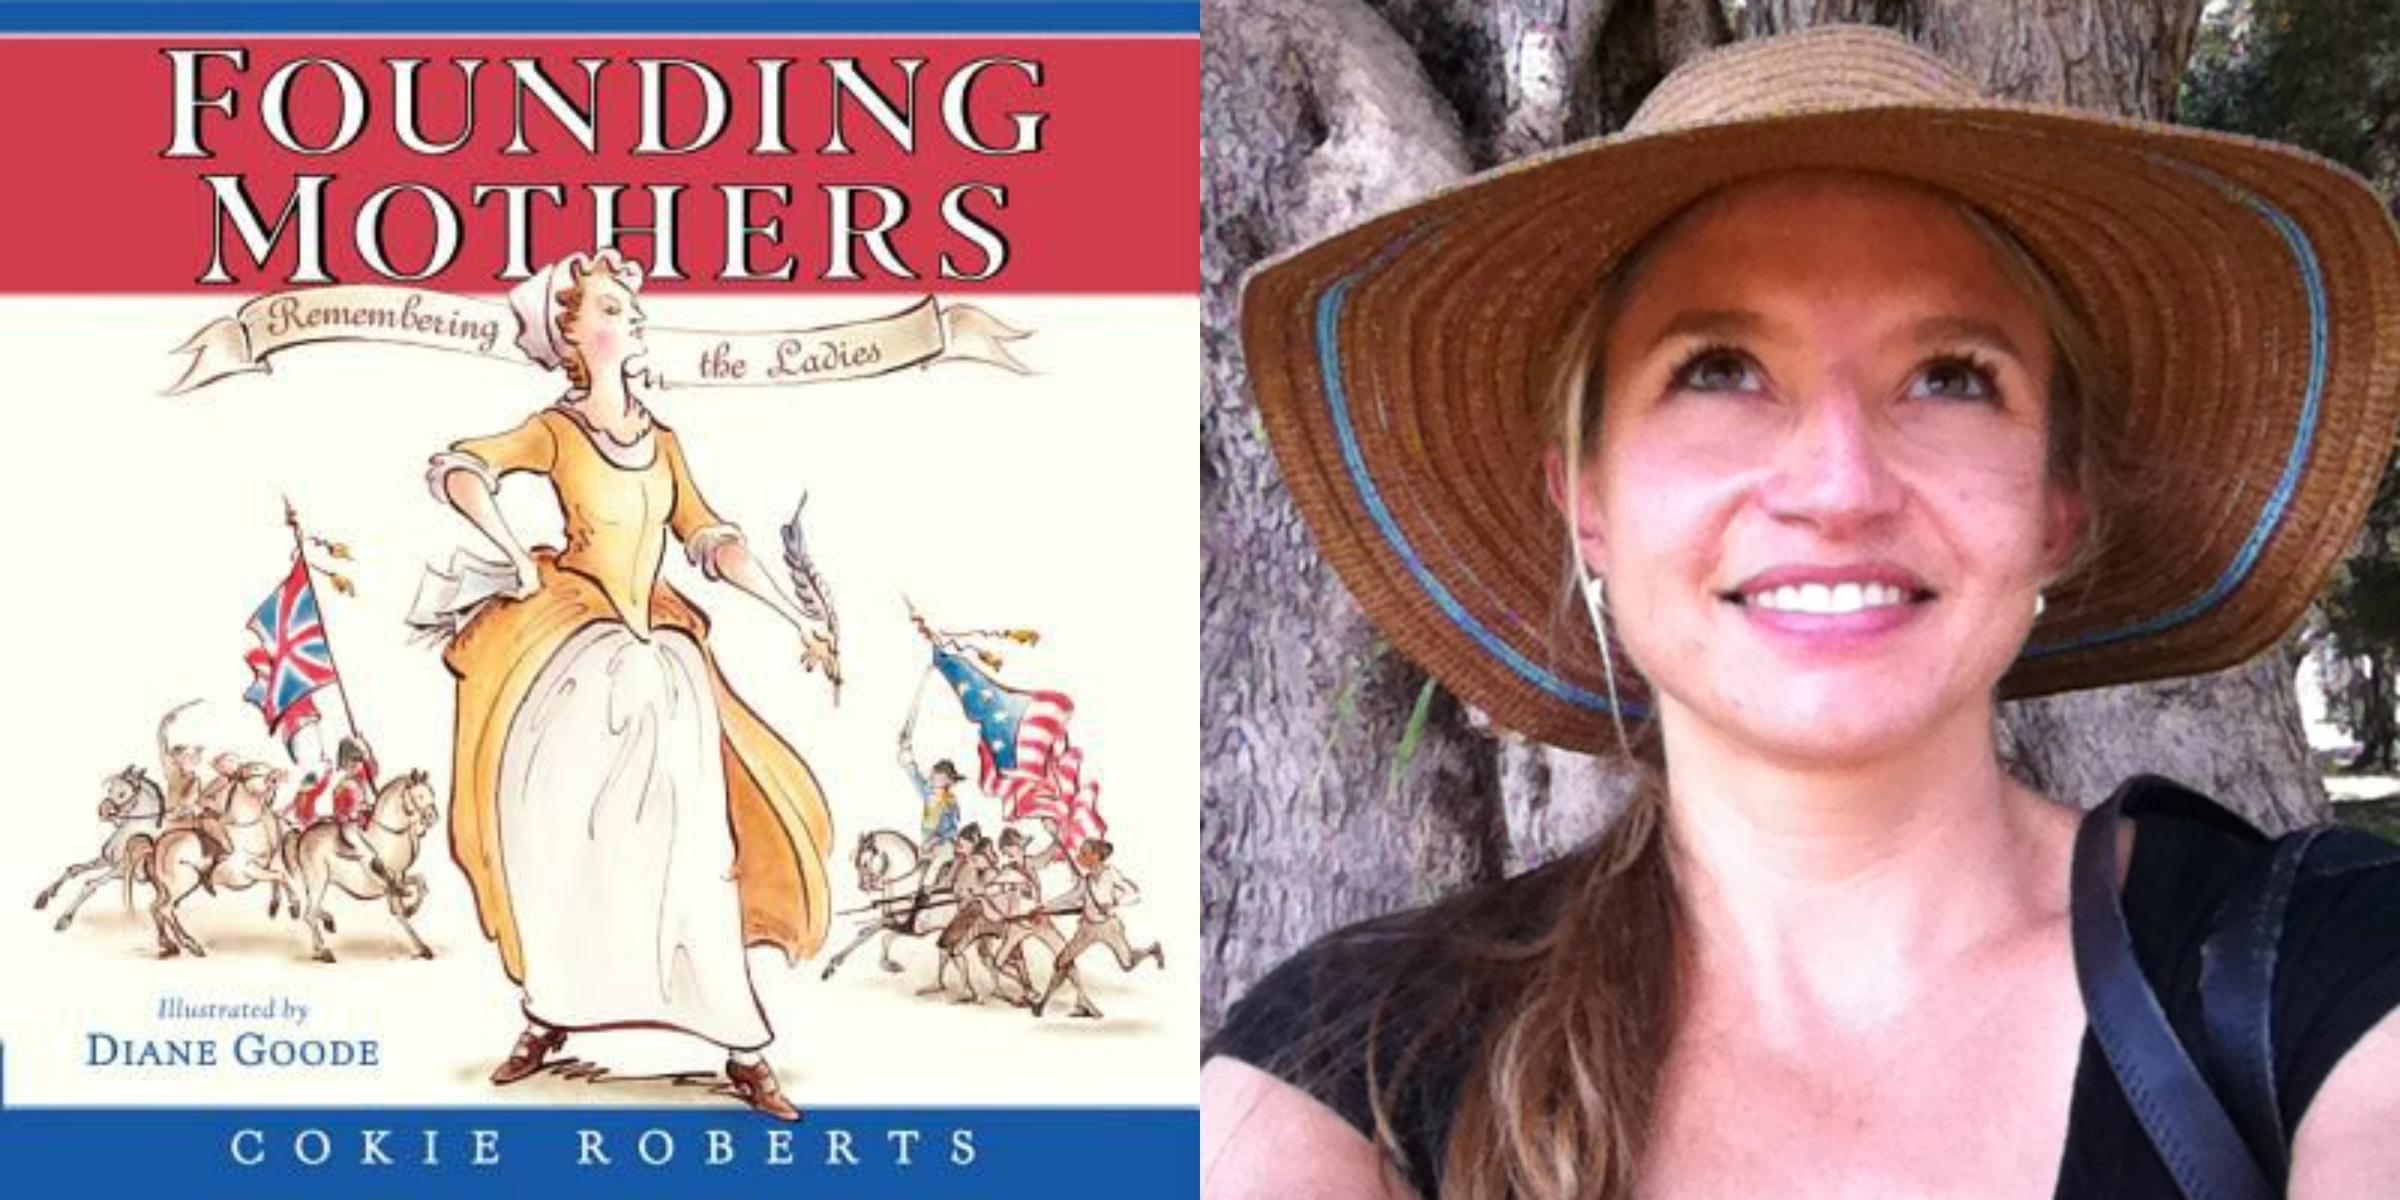 FOUNDING MOTHERS PDF DOWNLOAD